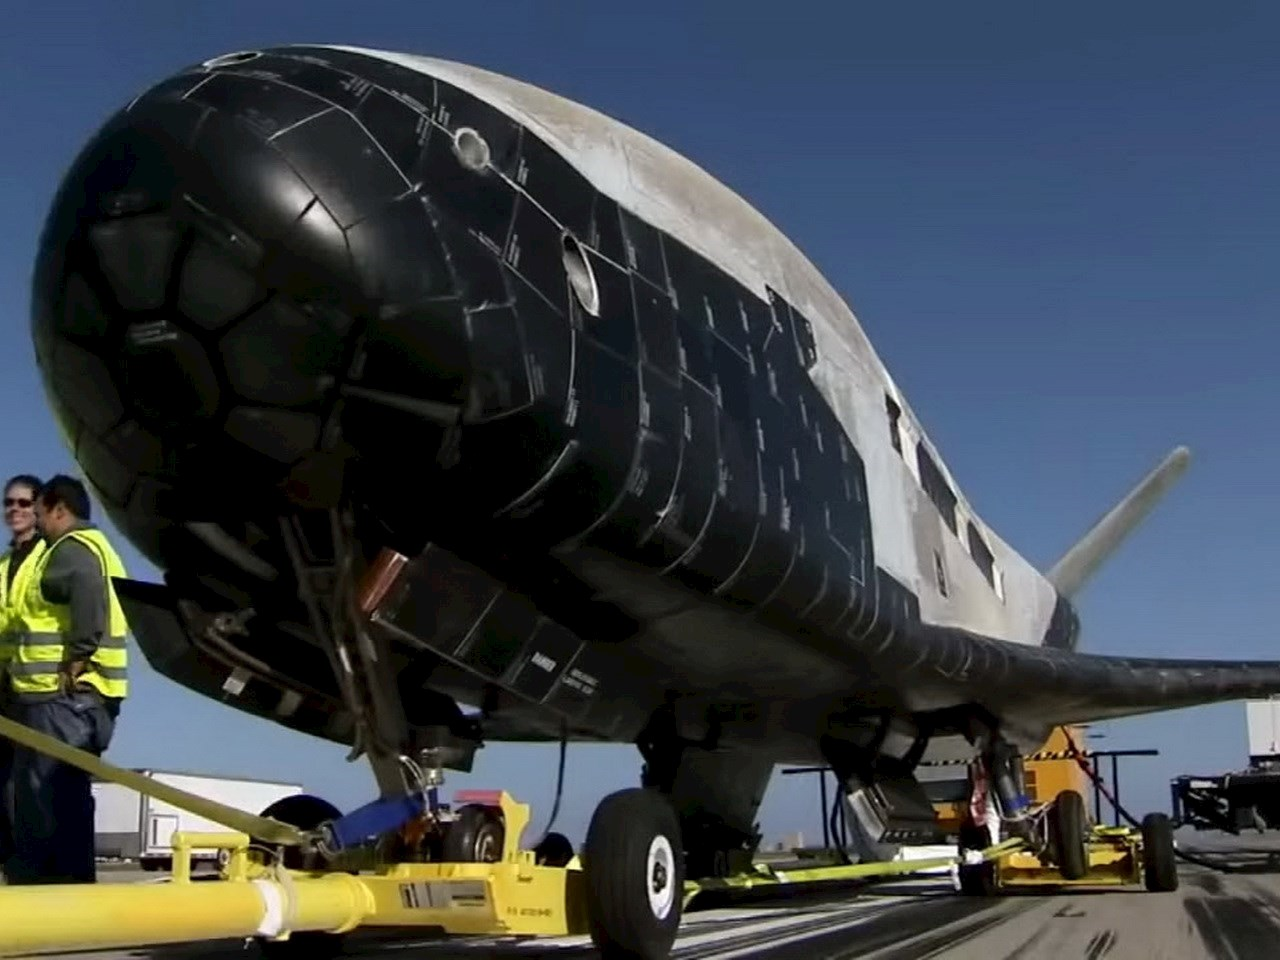 Secret X-37b Spacecraft on the ground